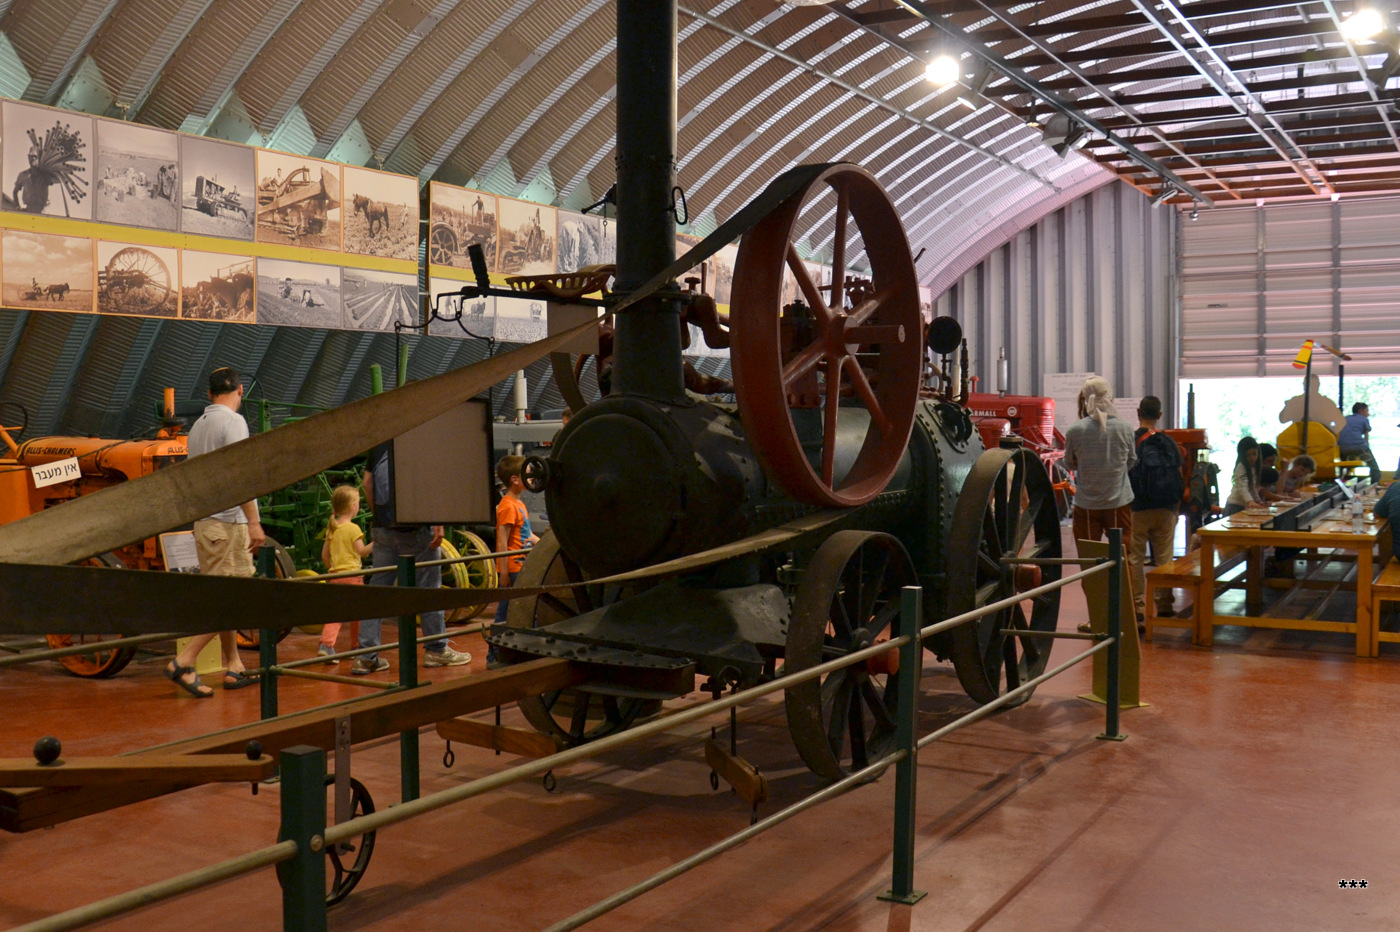 Паровая машина Messers Ruston's Portable Engine, 1875 г.в.. Израиль, кибуц Эйн Шемер, тракторный музей